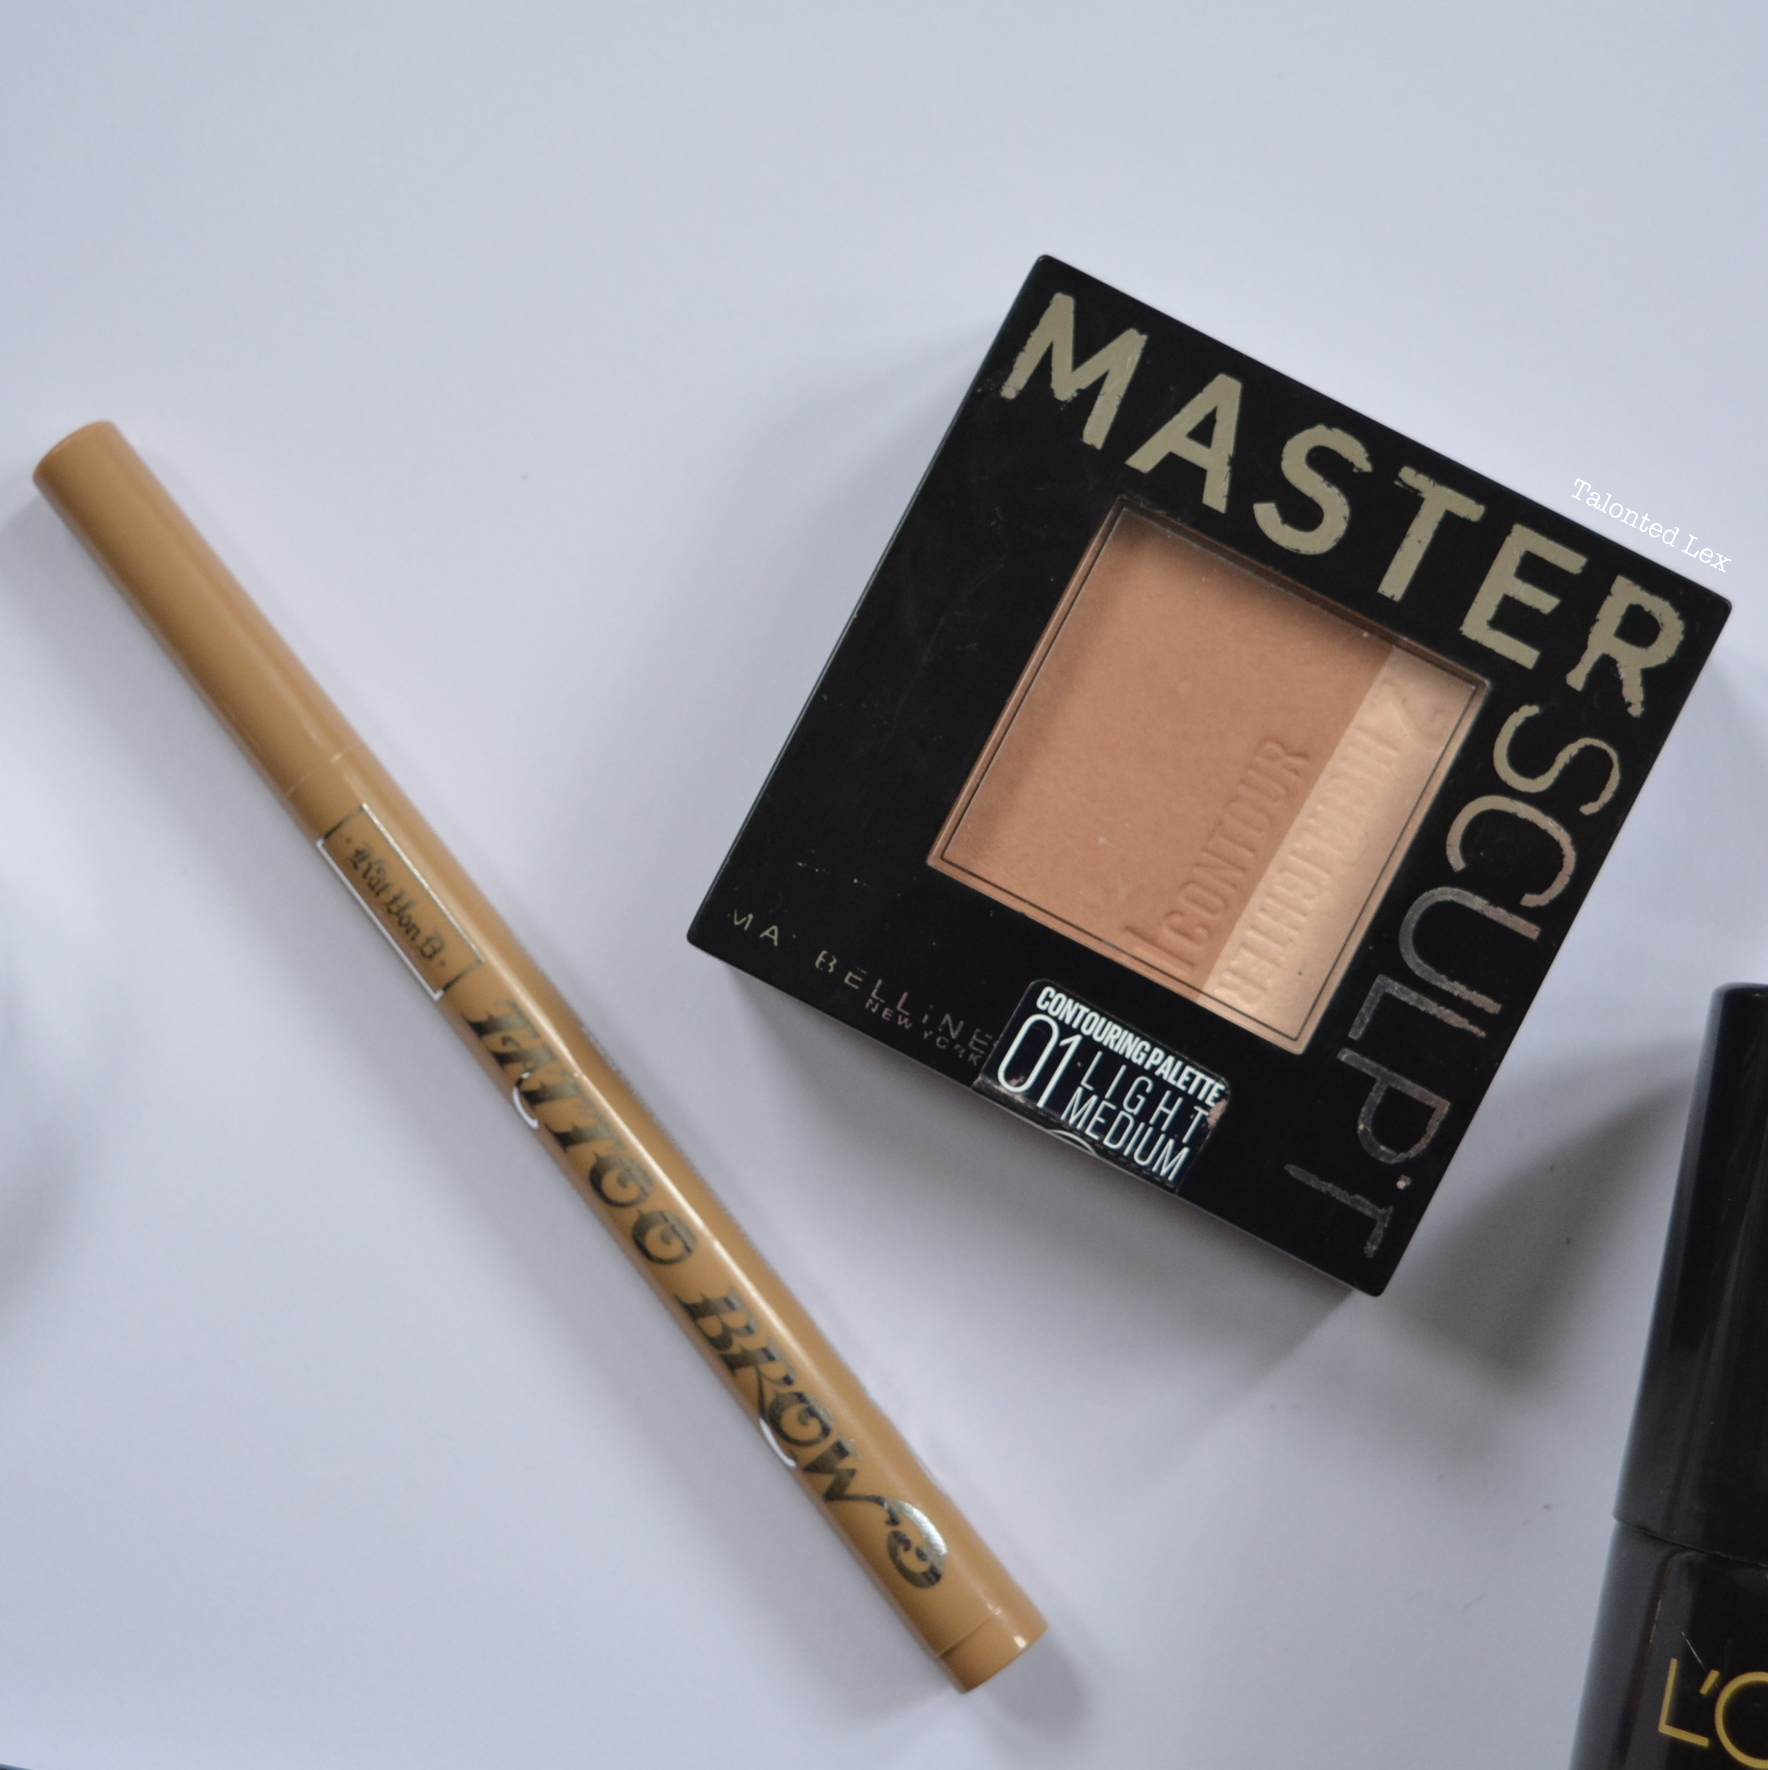 Talonted-Lex-August-2015-favourites-Maybelline-master-sculpt-kat-von-d-tattoo-brow-